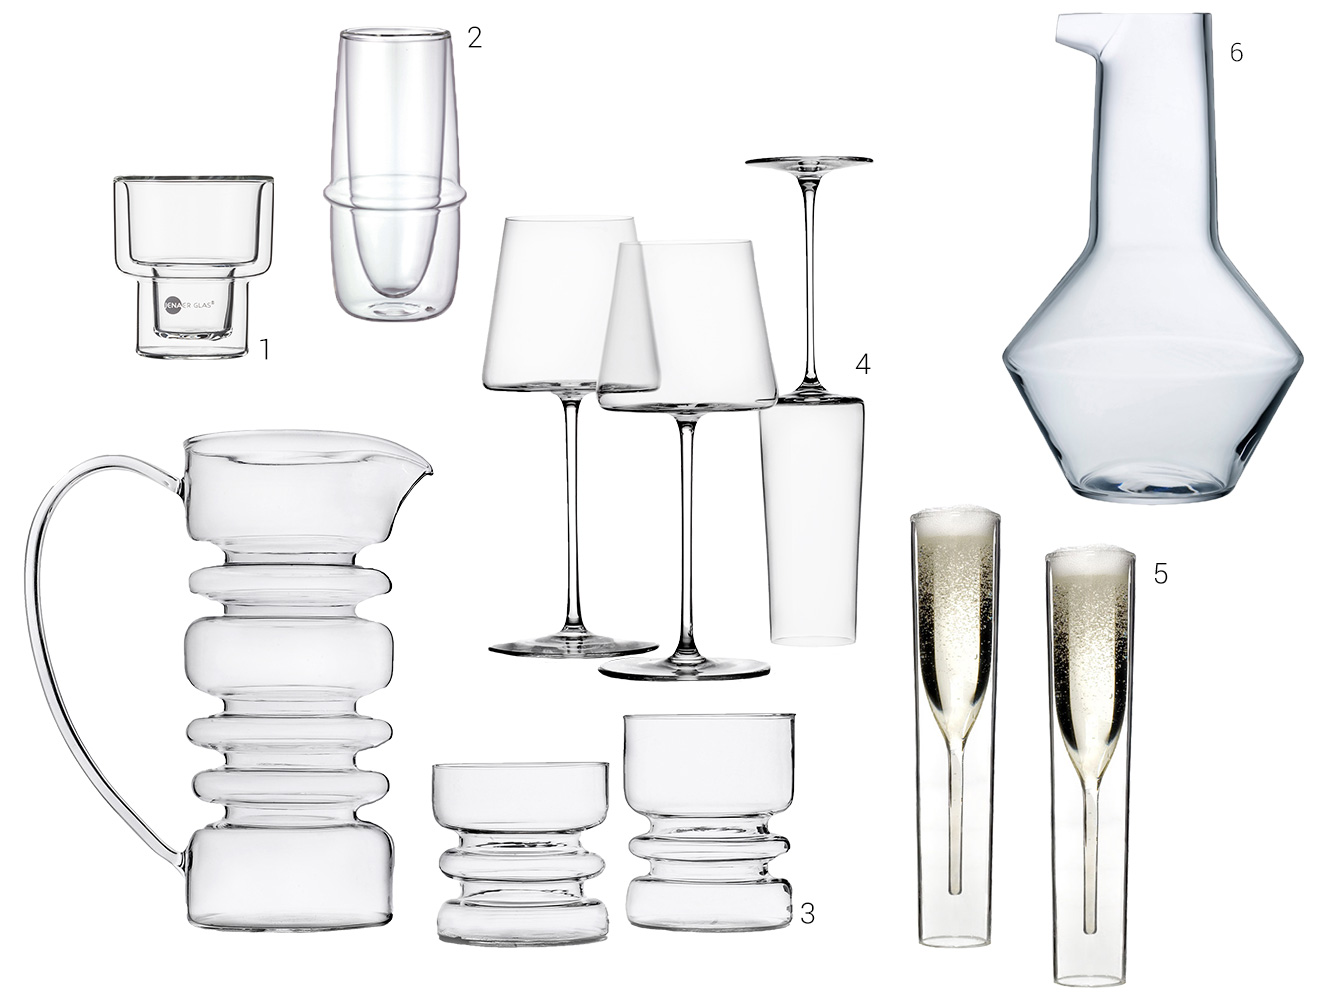 Clean designed carafes and glasses from different exhibitors